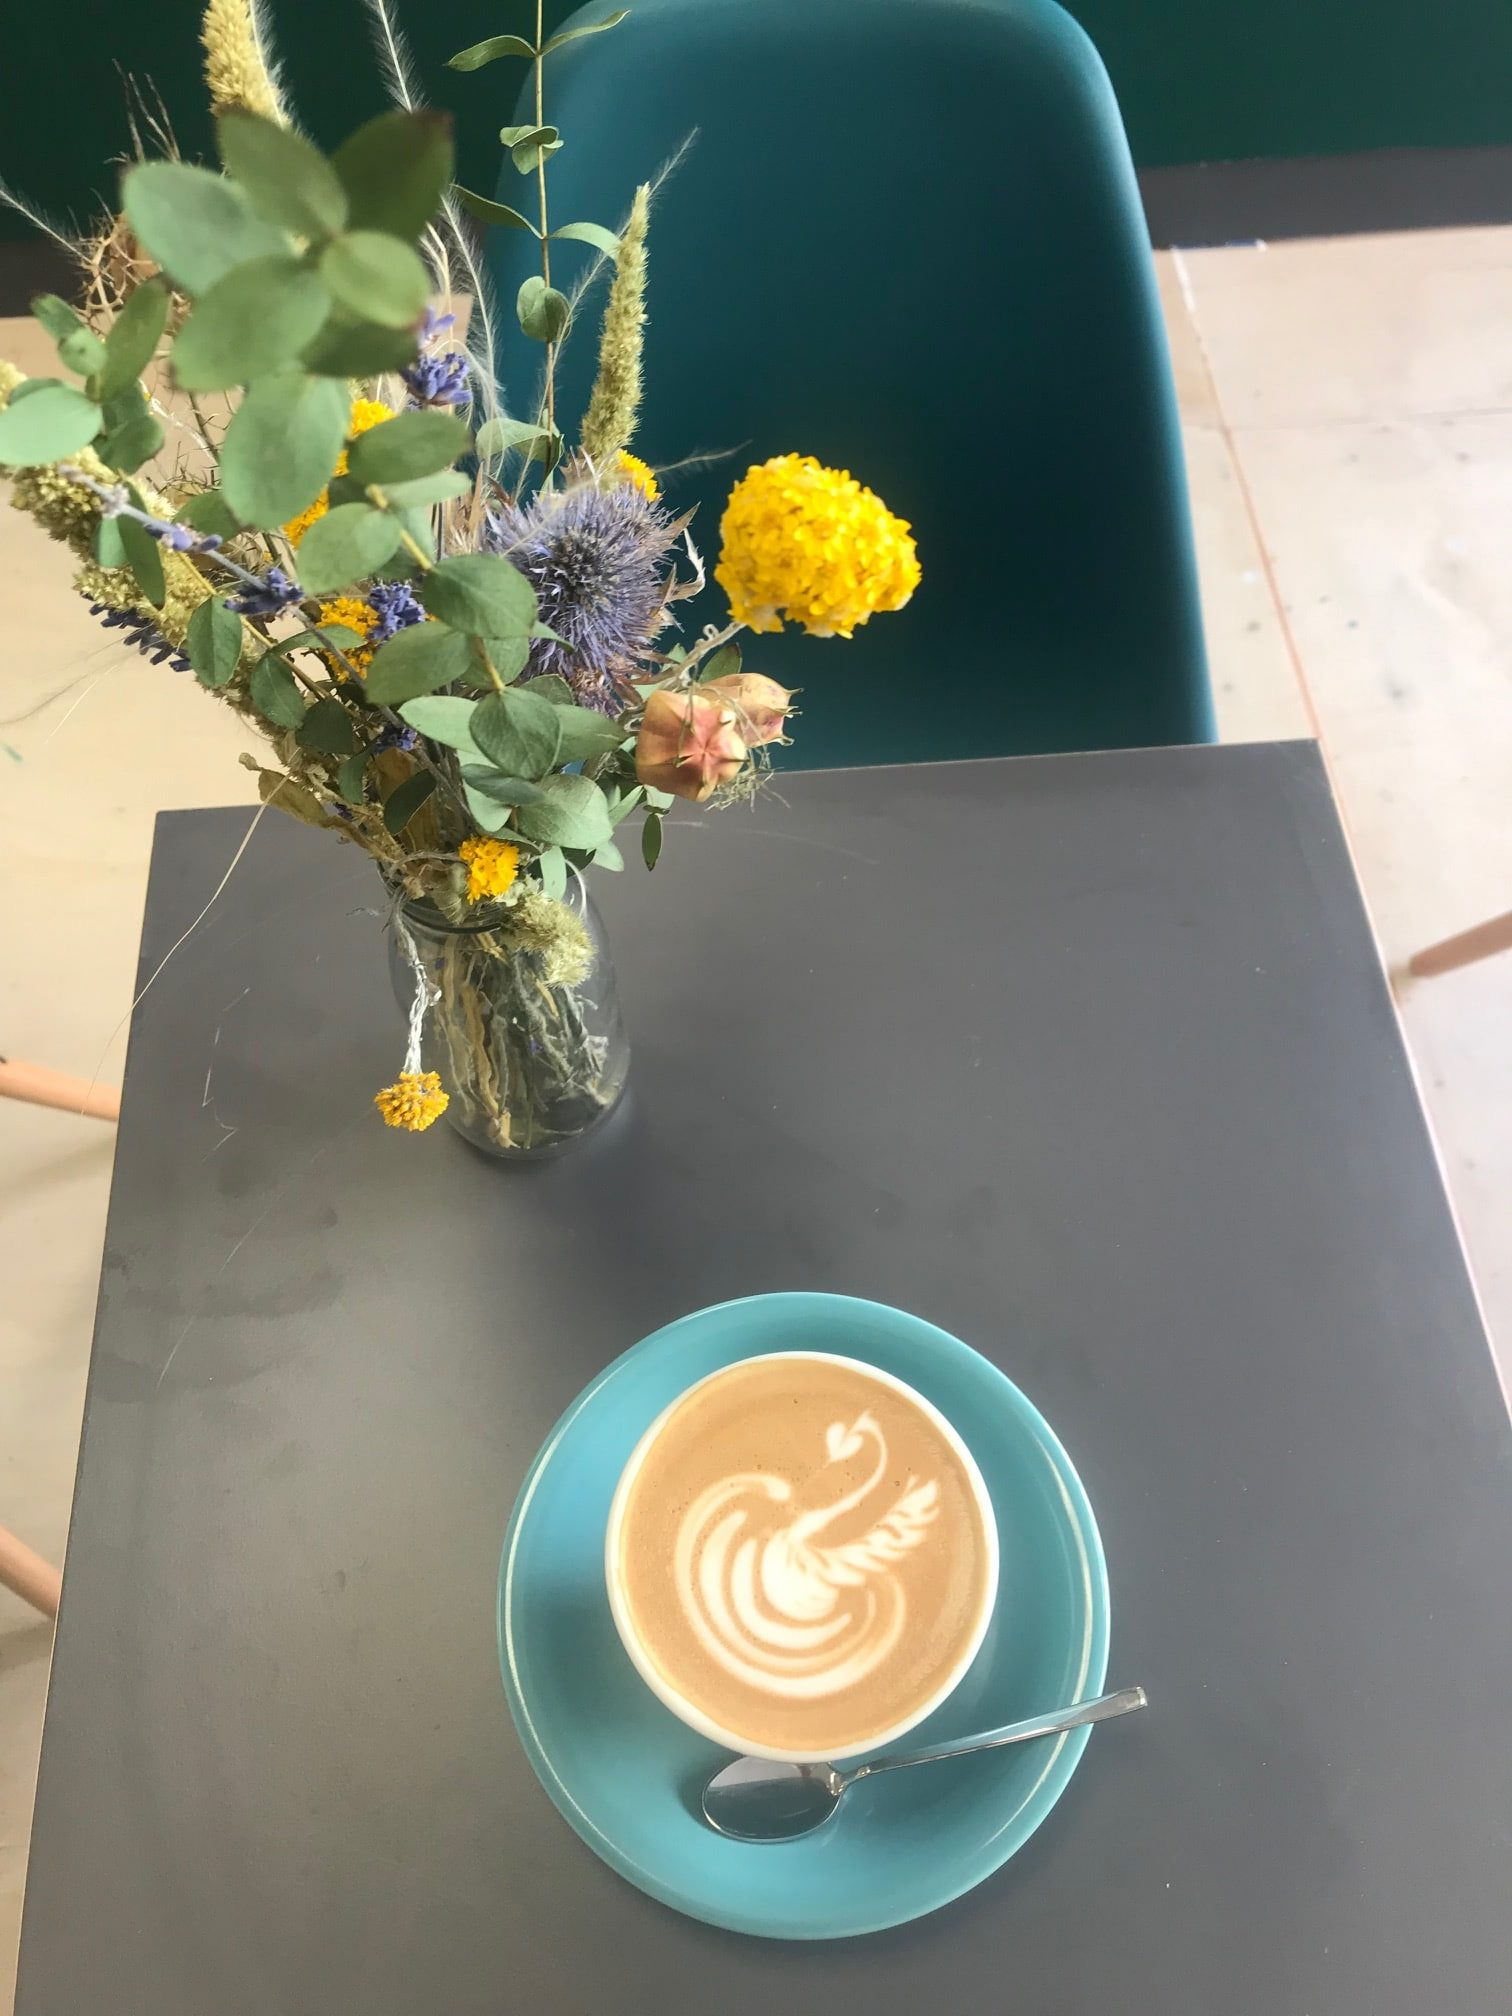 dried flowers and a cup of coffee on a table